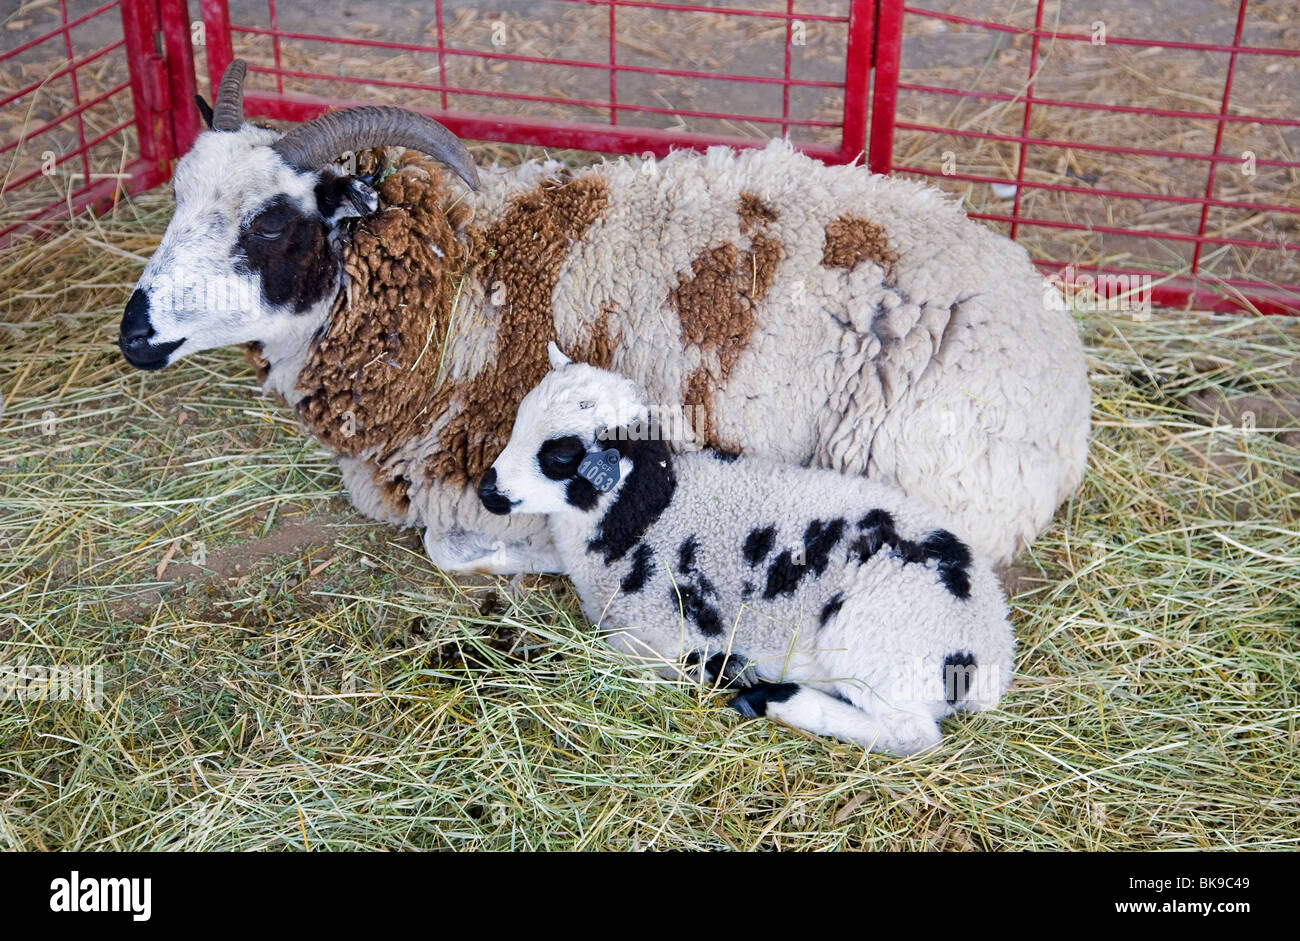 Jacob sheep and lamb. Jacob sheep originated in Syria 3000 years ago. They are a Heritage Sheep in the US - Stock Image